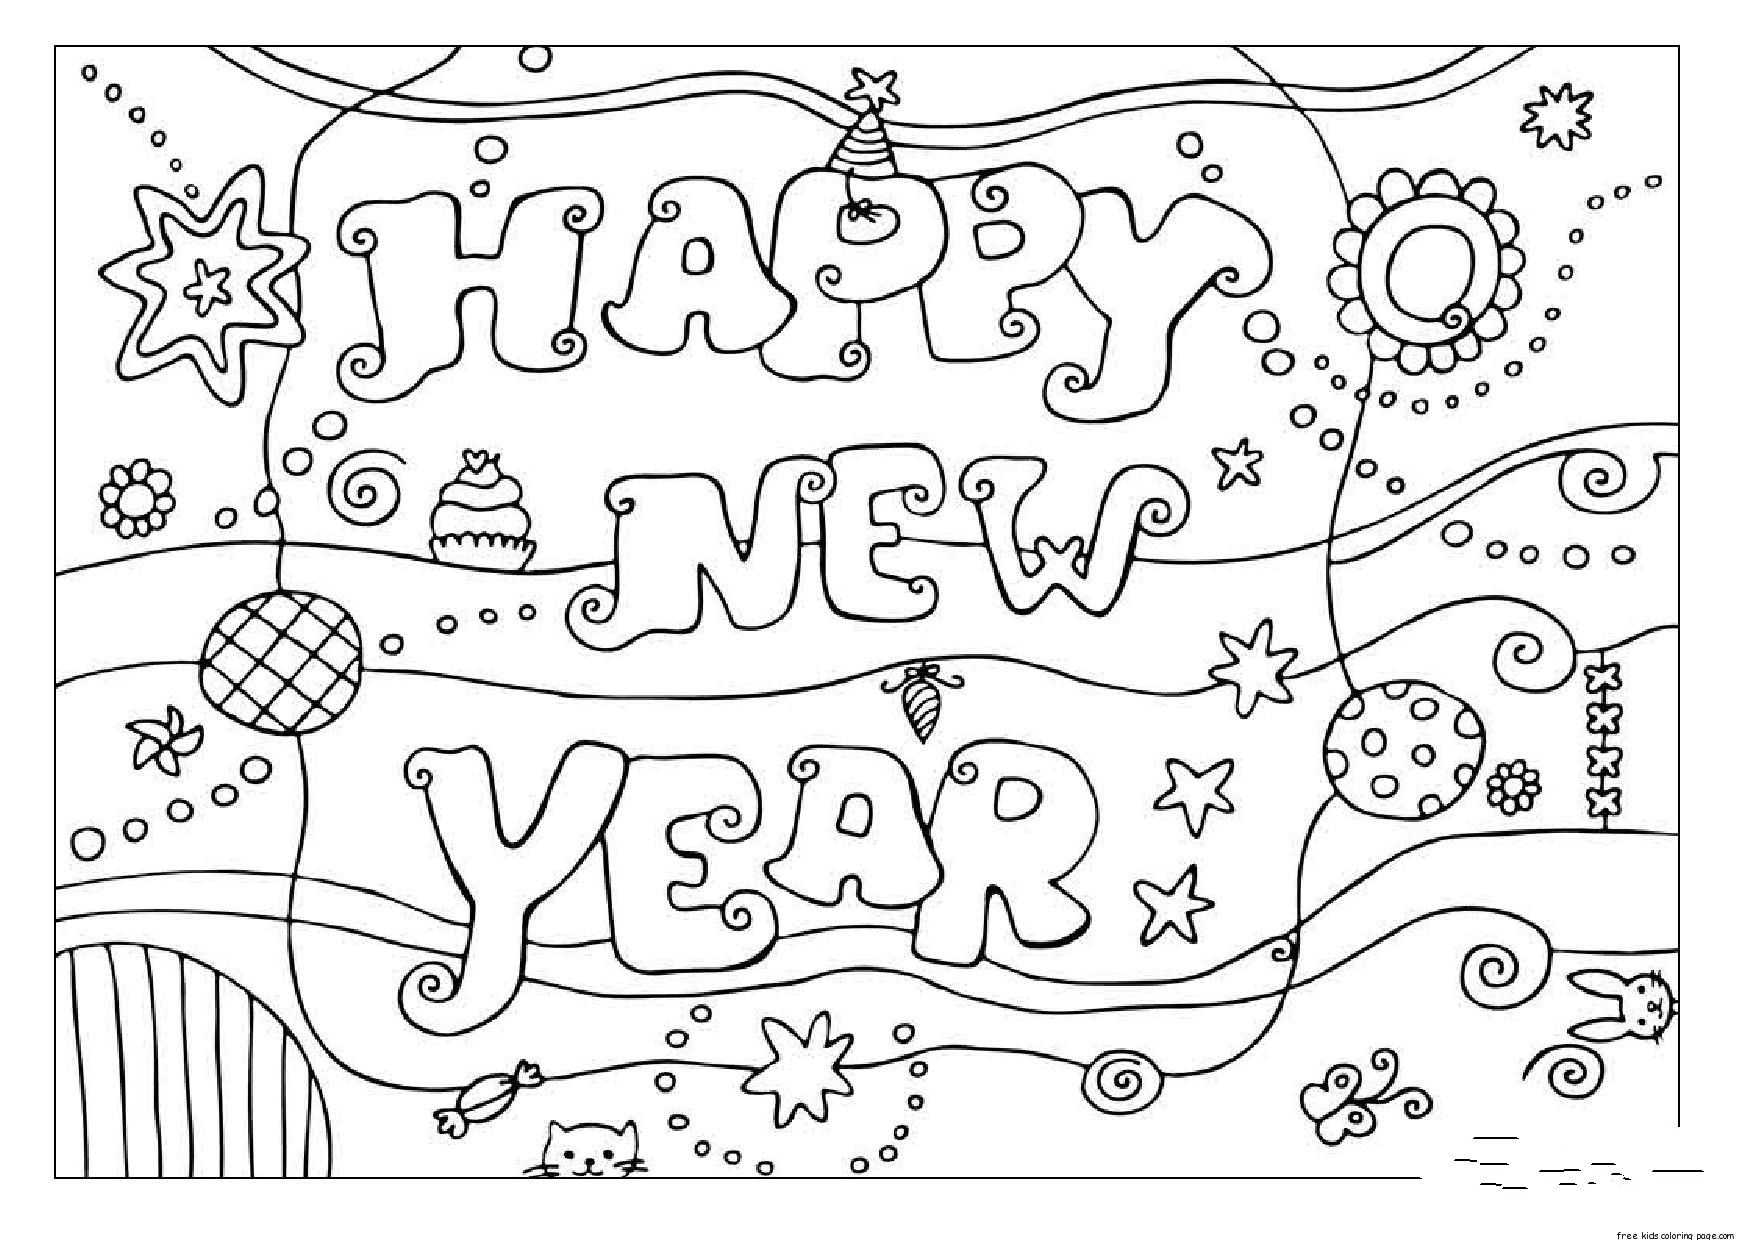 Printable Coloring Pages Happy New Year Free Printable Coloring Pages For Kids